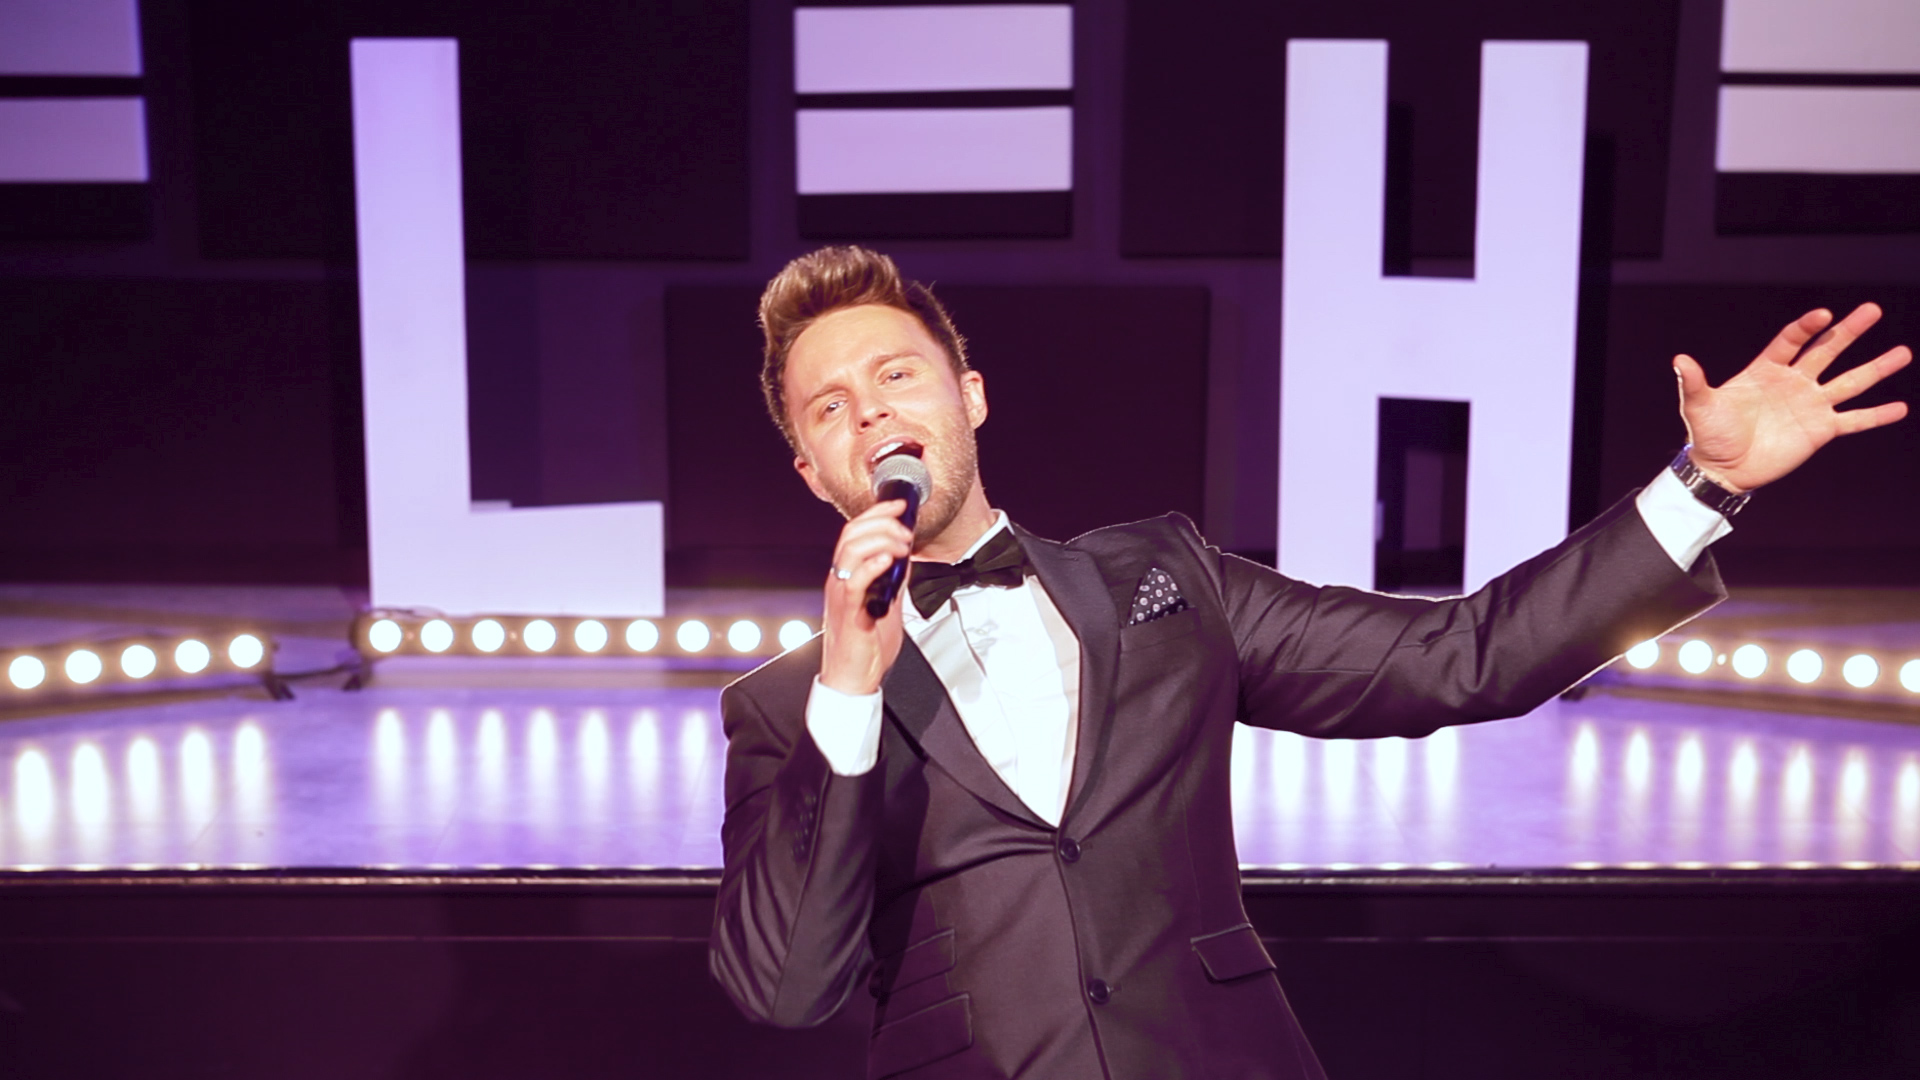 Michael Buble Tribute Act - Lee Hutton